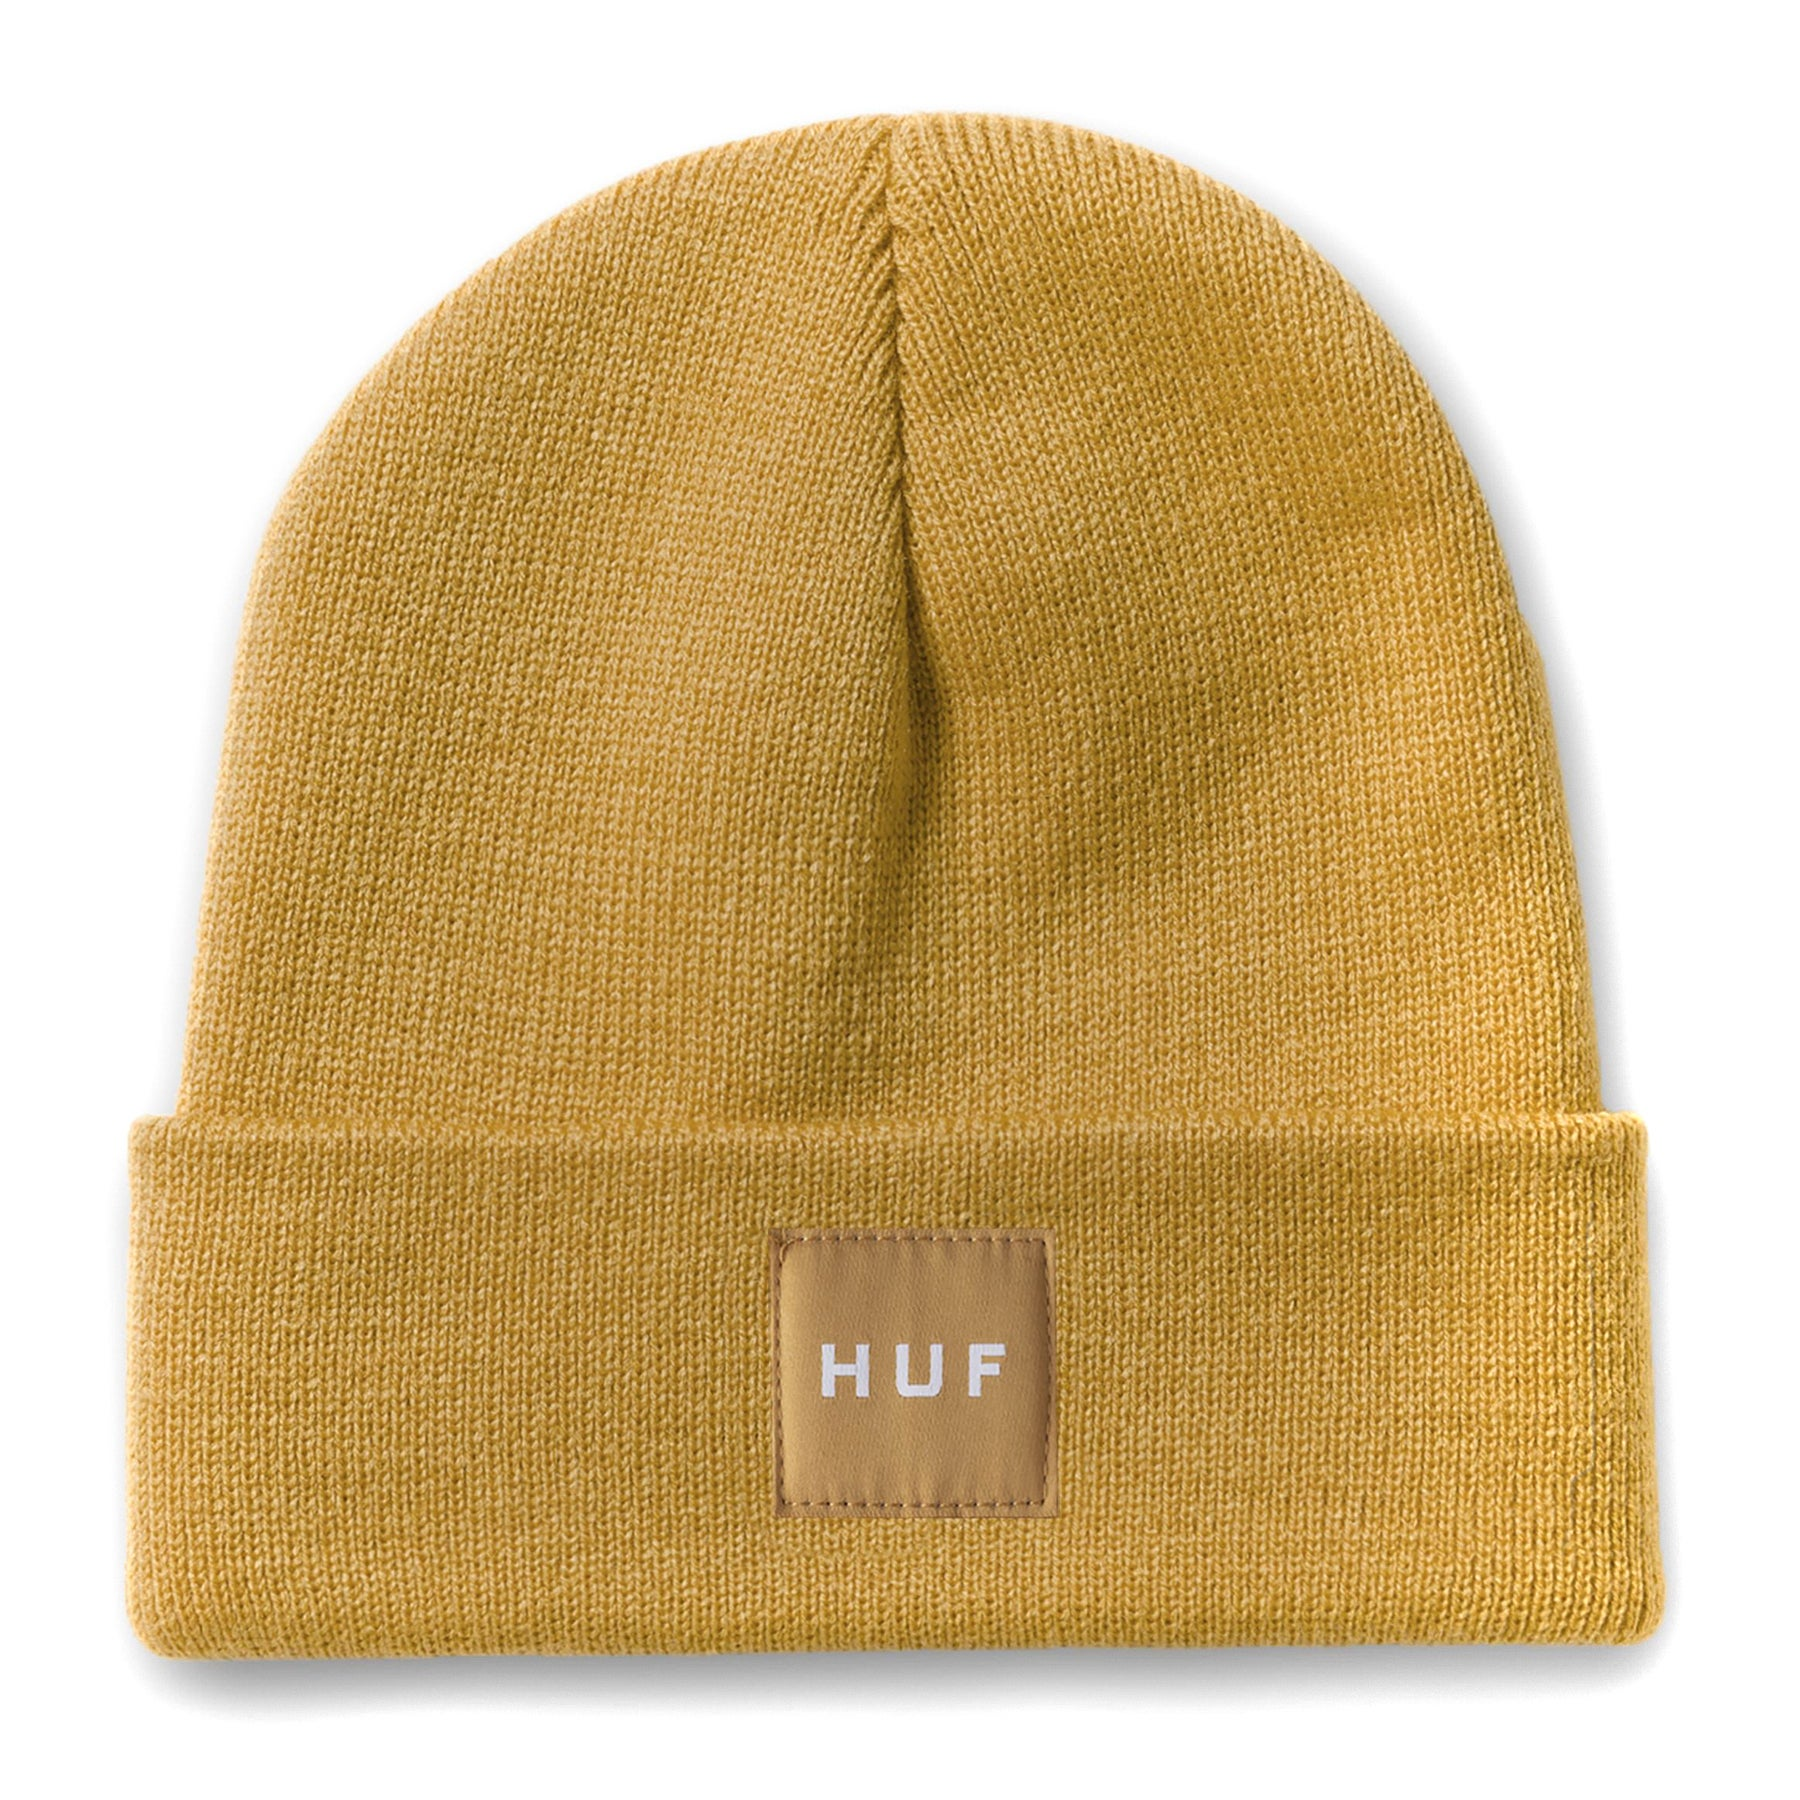 258e15360414 Huf Box Logo Mens Headwear Beanie Hat - Honey Mustard One Size | eBay